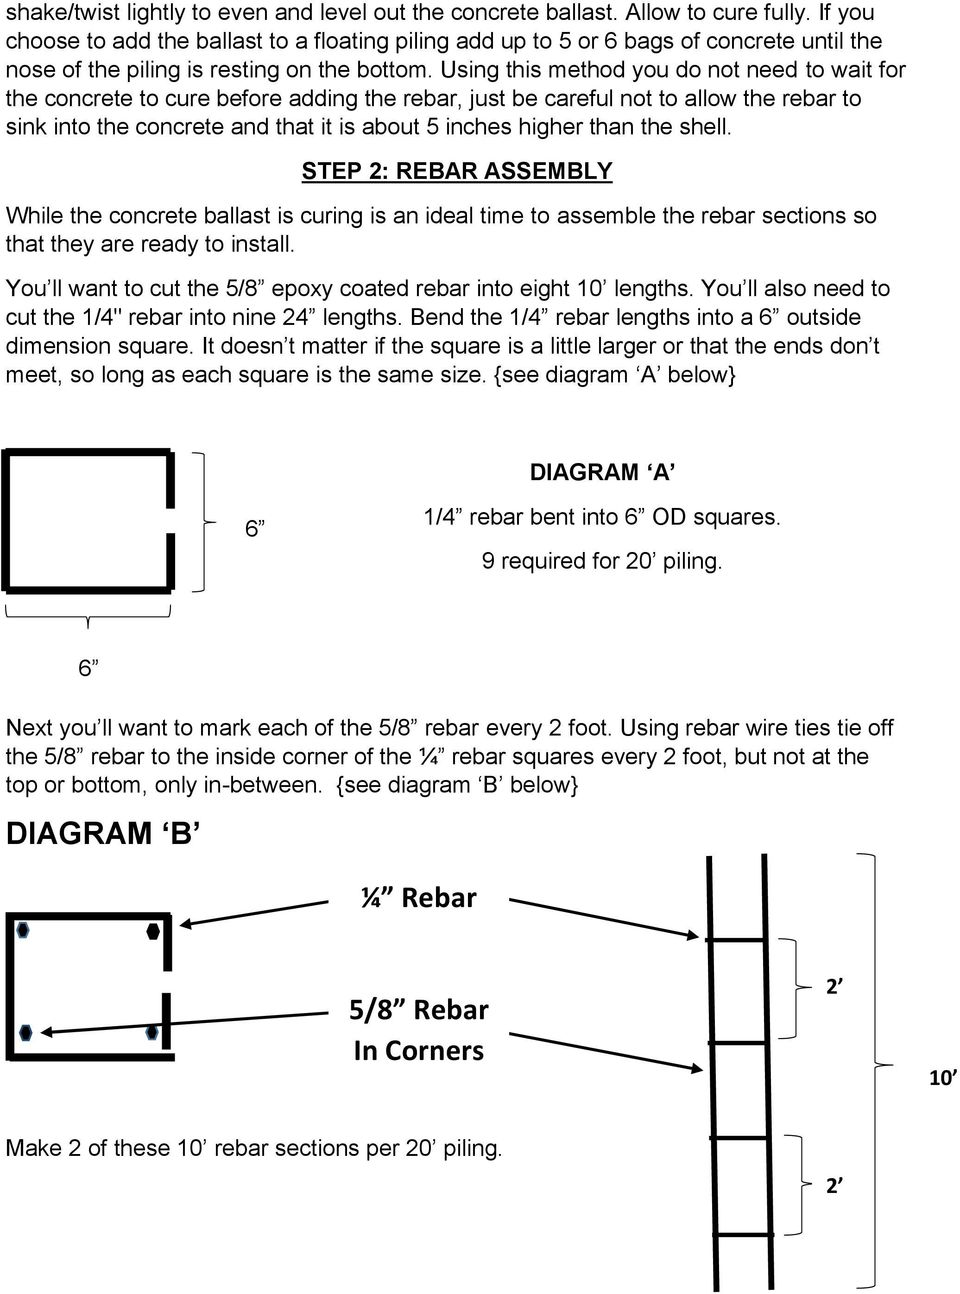 Cougar DIY Dock And Boat Lift Piling Installation Instructions - PDF